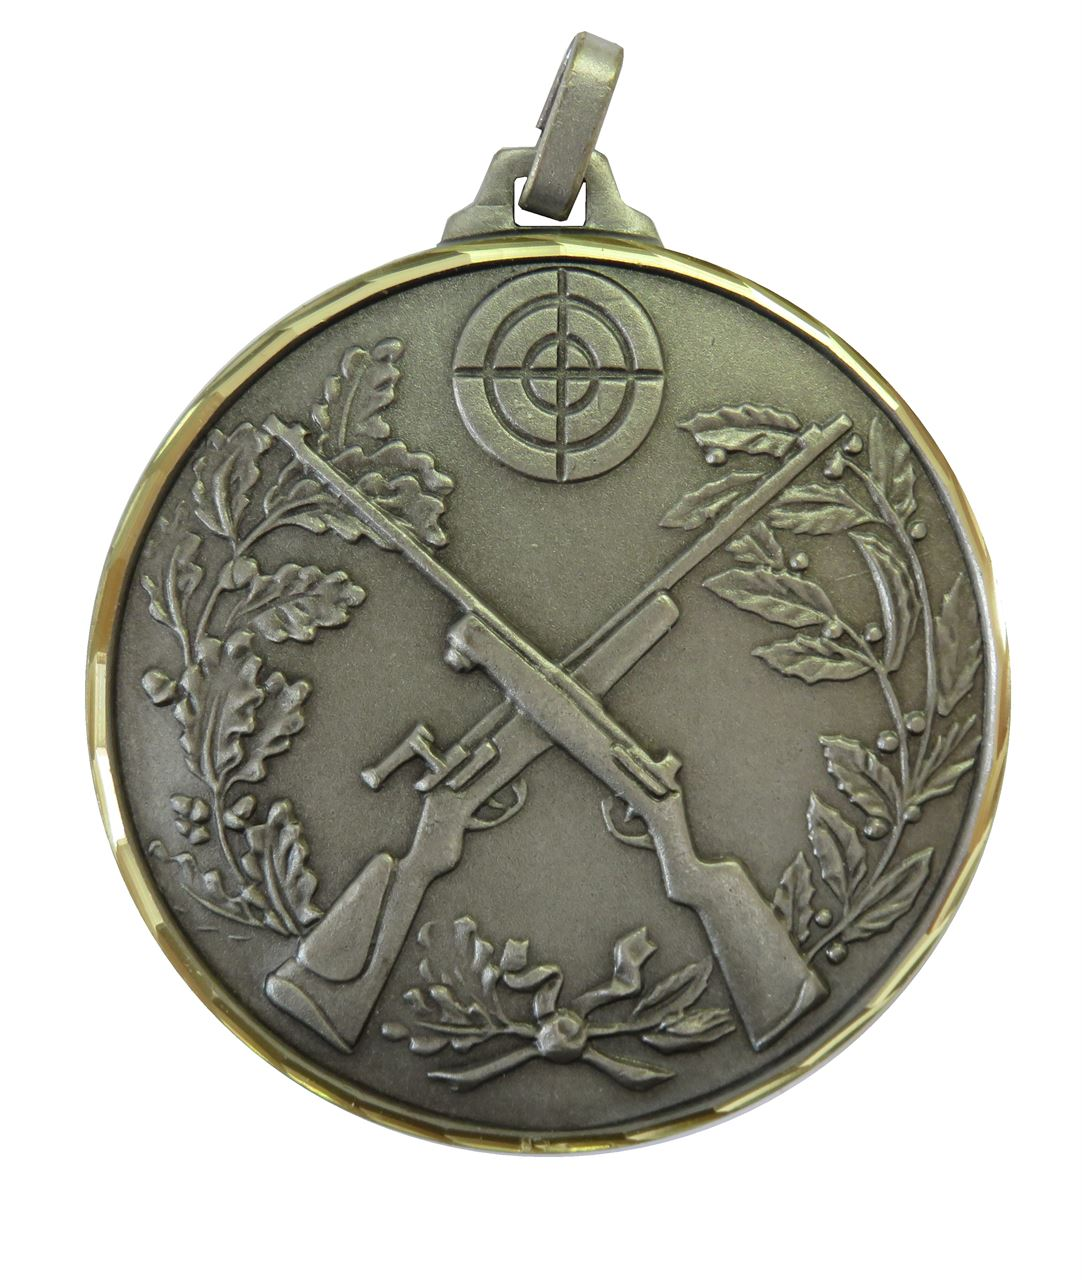 Silver Faceted Cross Rifles Medal (size: 52mm) - 394F/52S